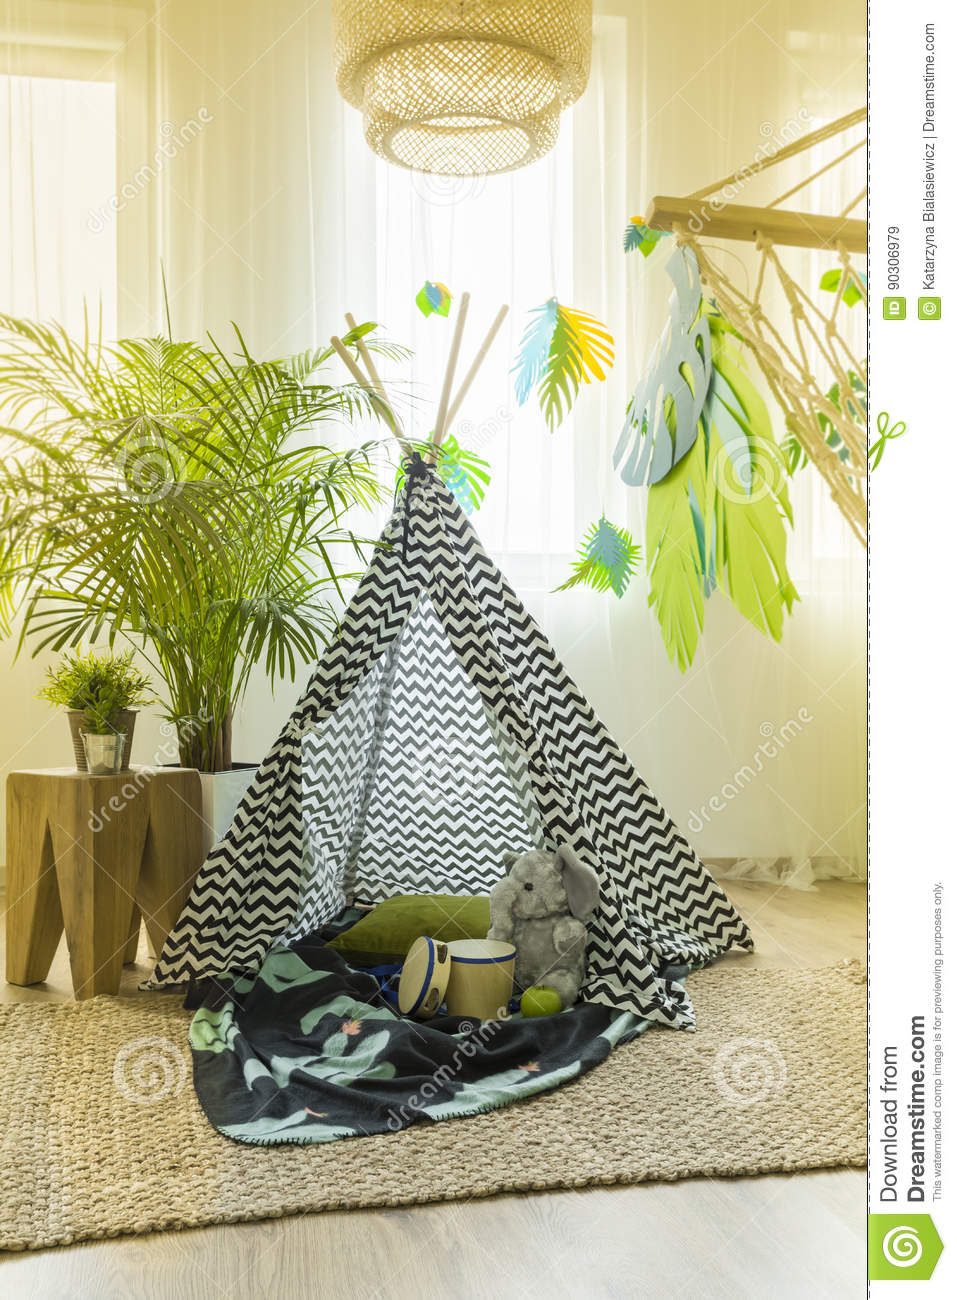 Kids Room With Tent Stock Image Image Of Lifestyle House 90306979